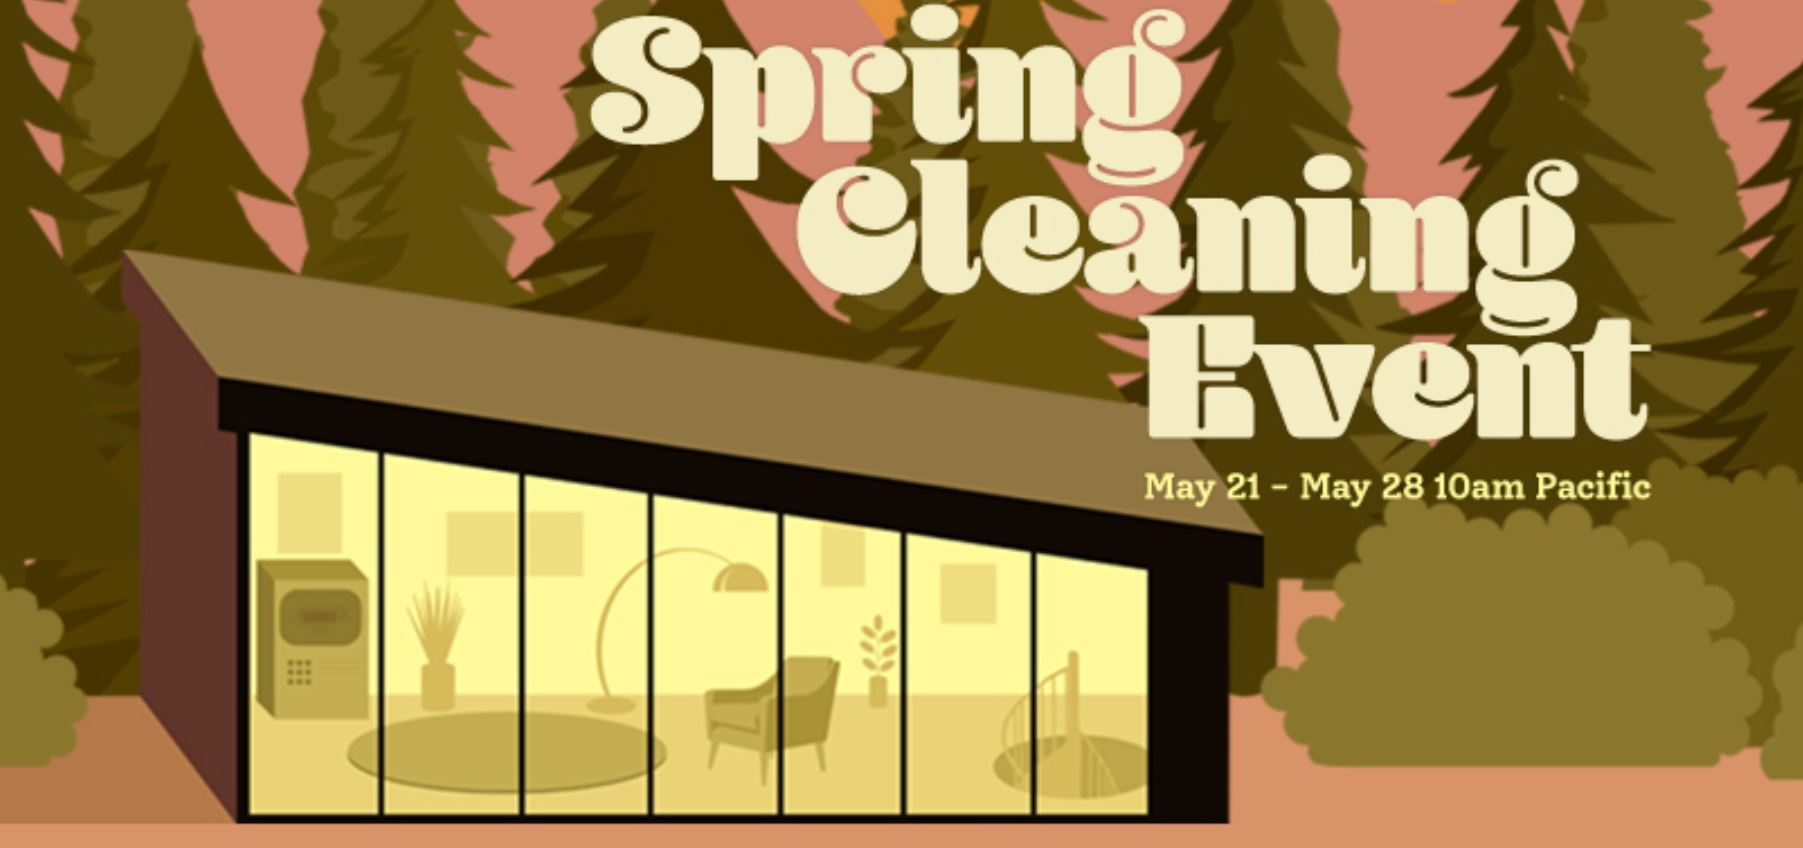 Steam Spring Cleaning 2020